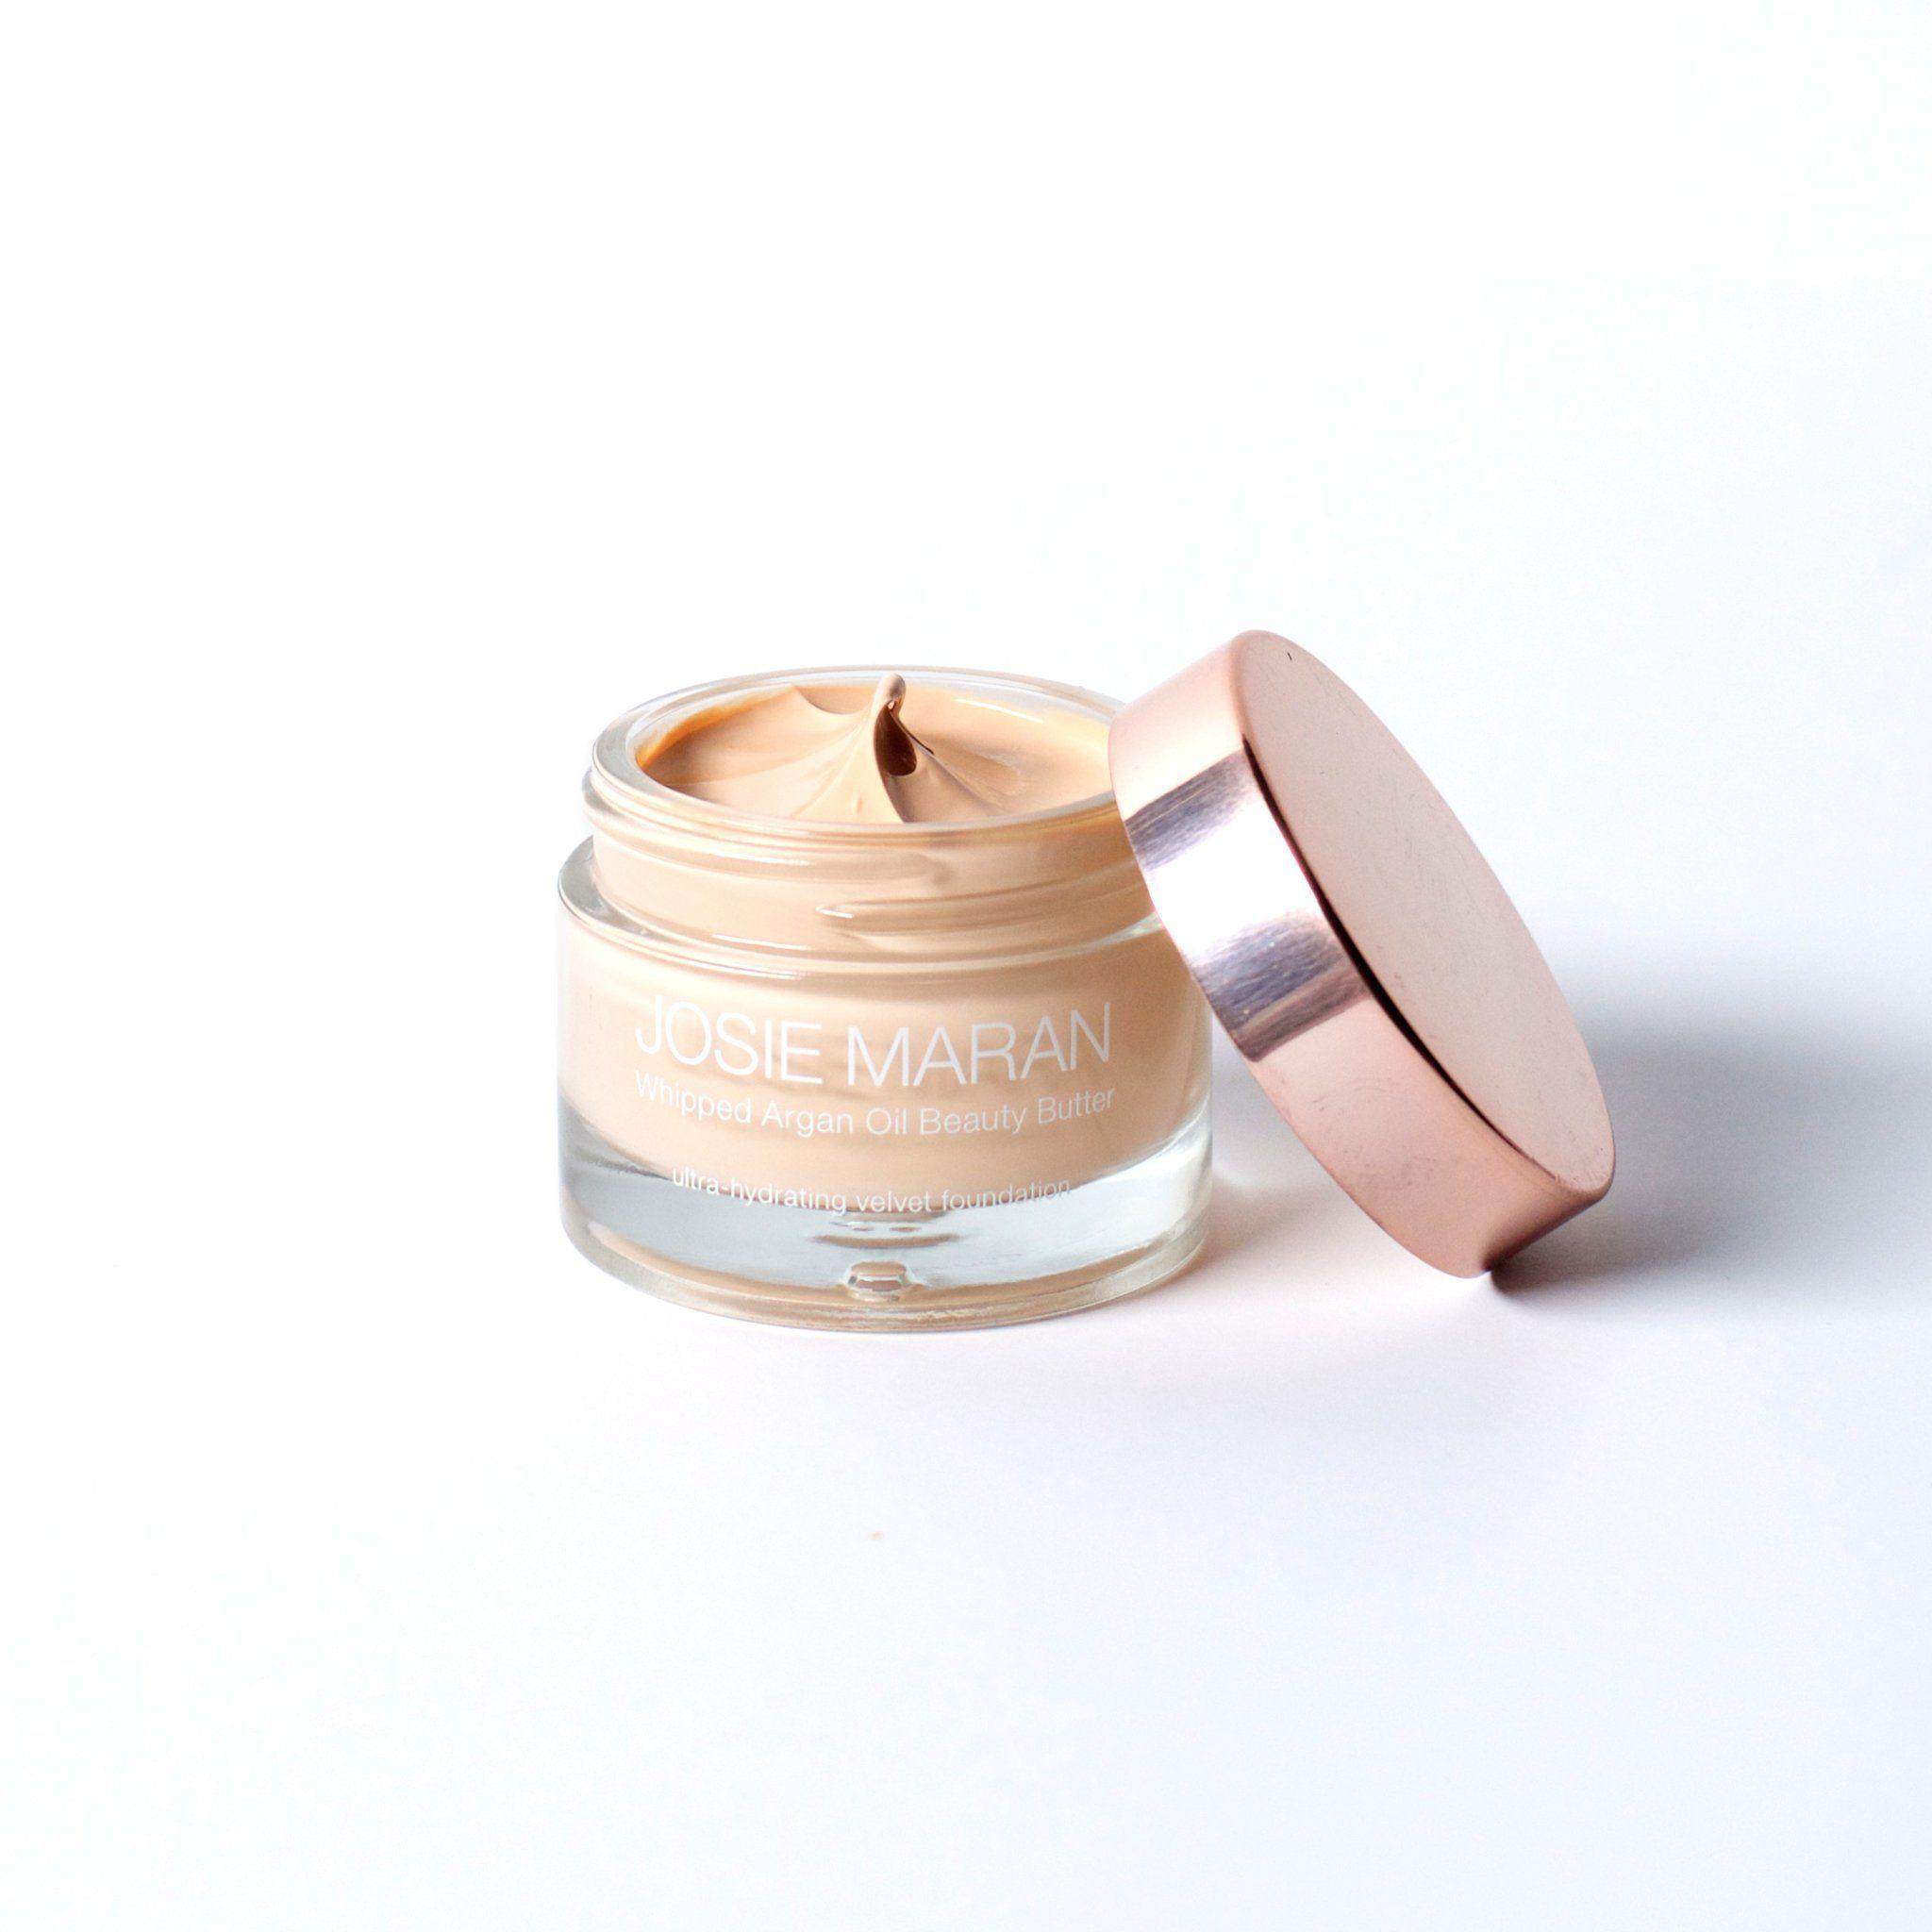 Josie Maran Whipped Argan Oil Beauty Butter Fair